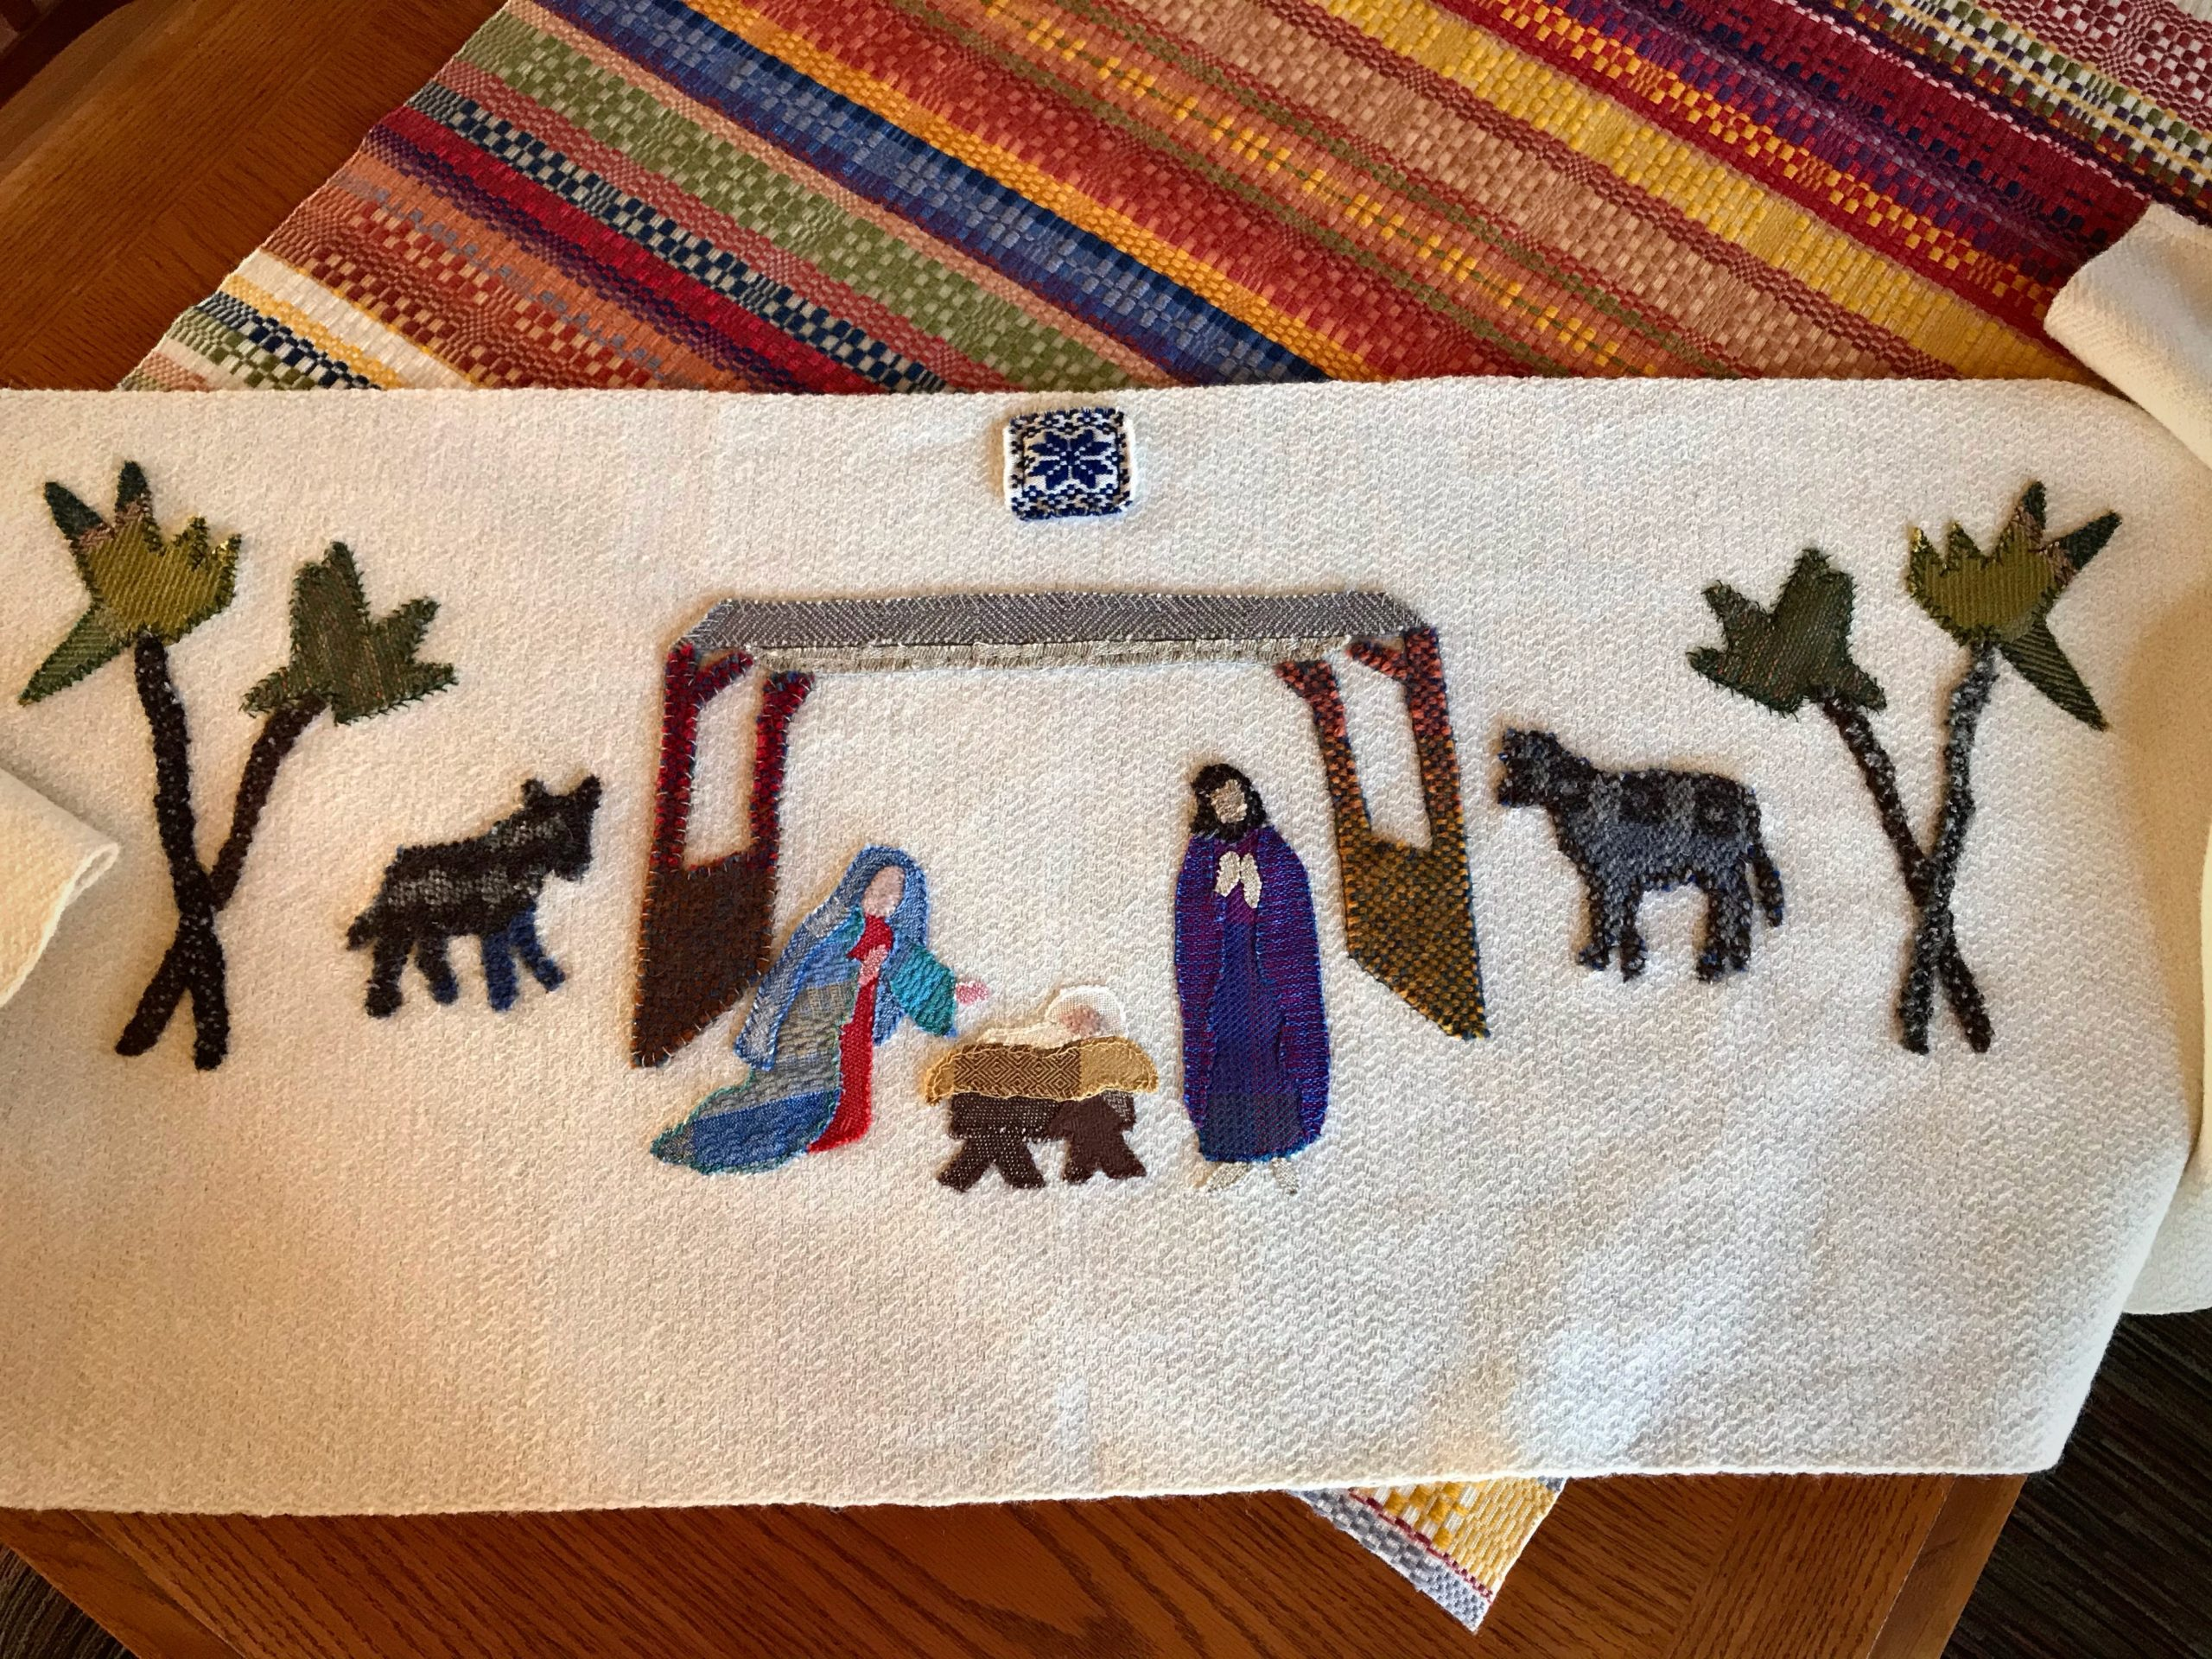 Handwoven Nativity scene.